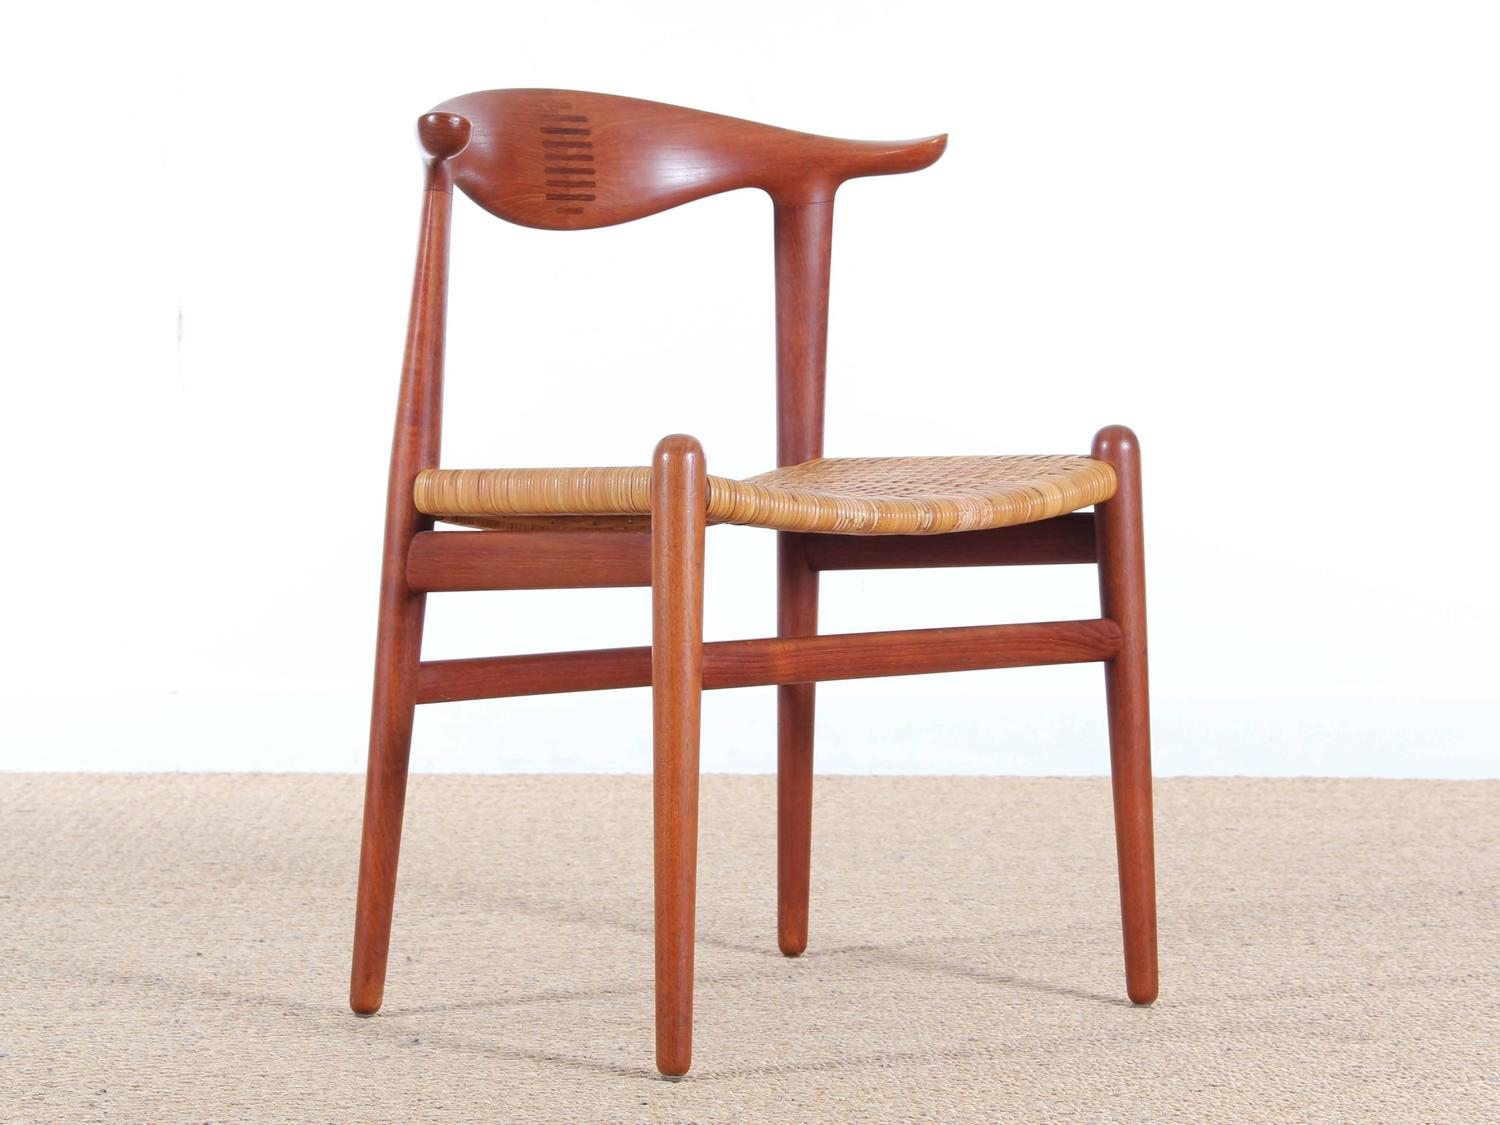 Cow Horn Chair In Teak By Hans Wegner For Johannes Hansen For Sale At 1stdibs